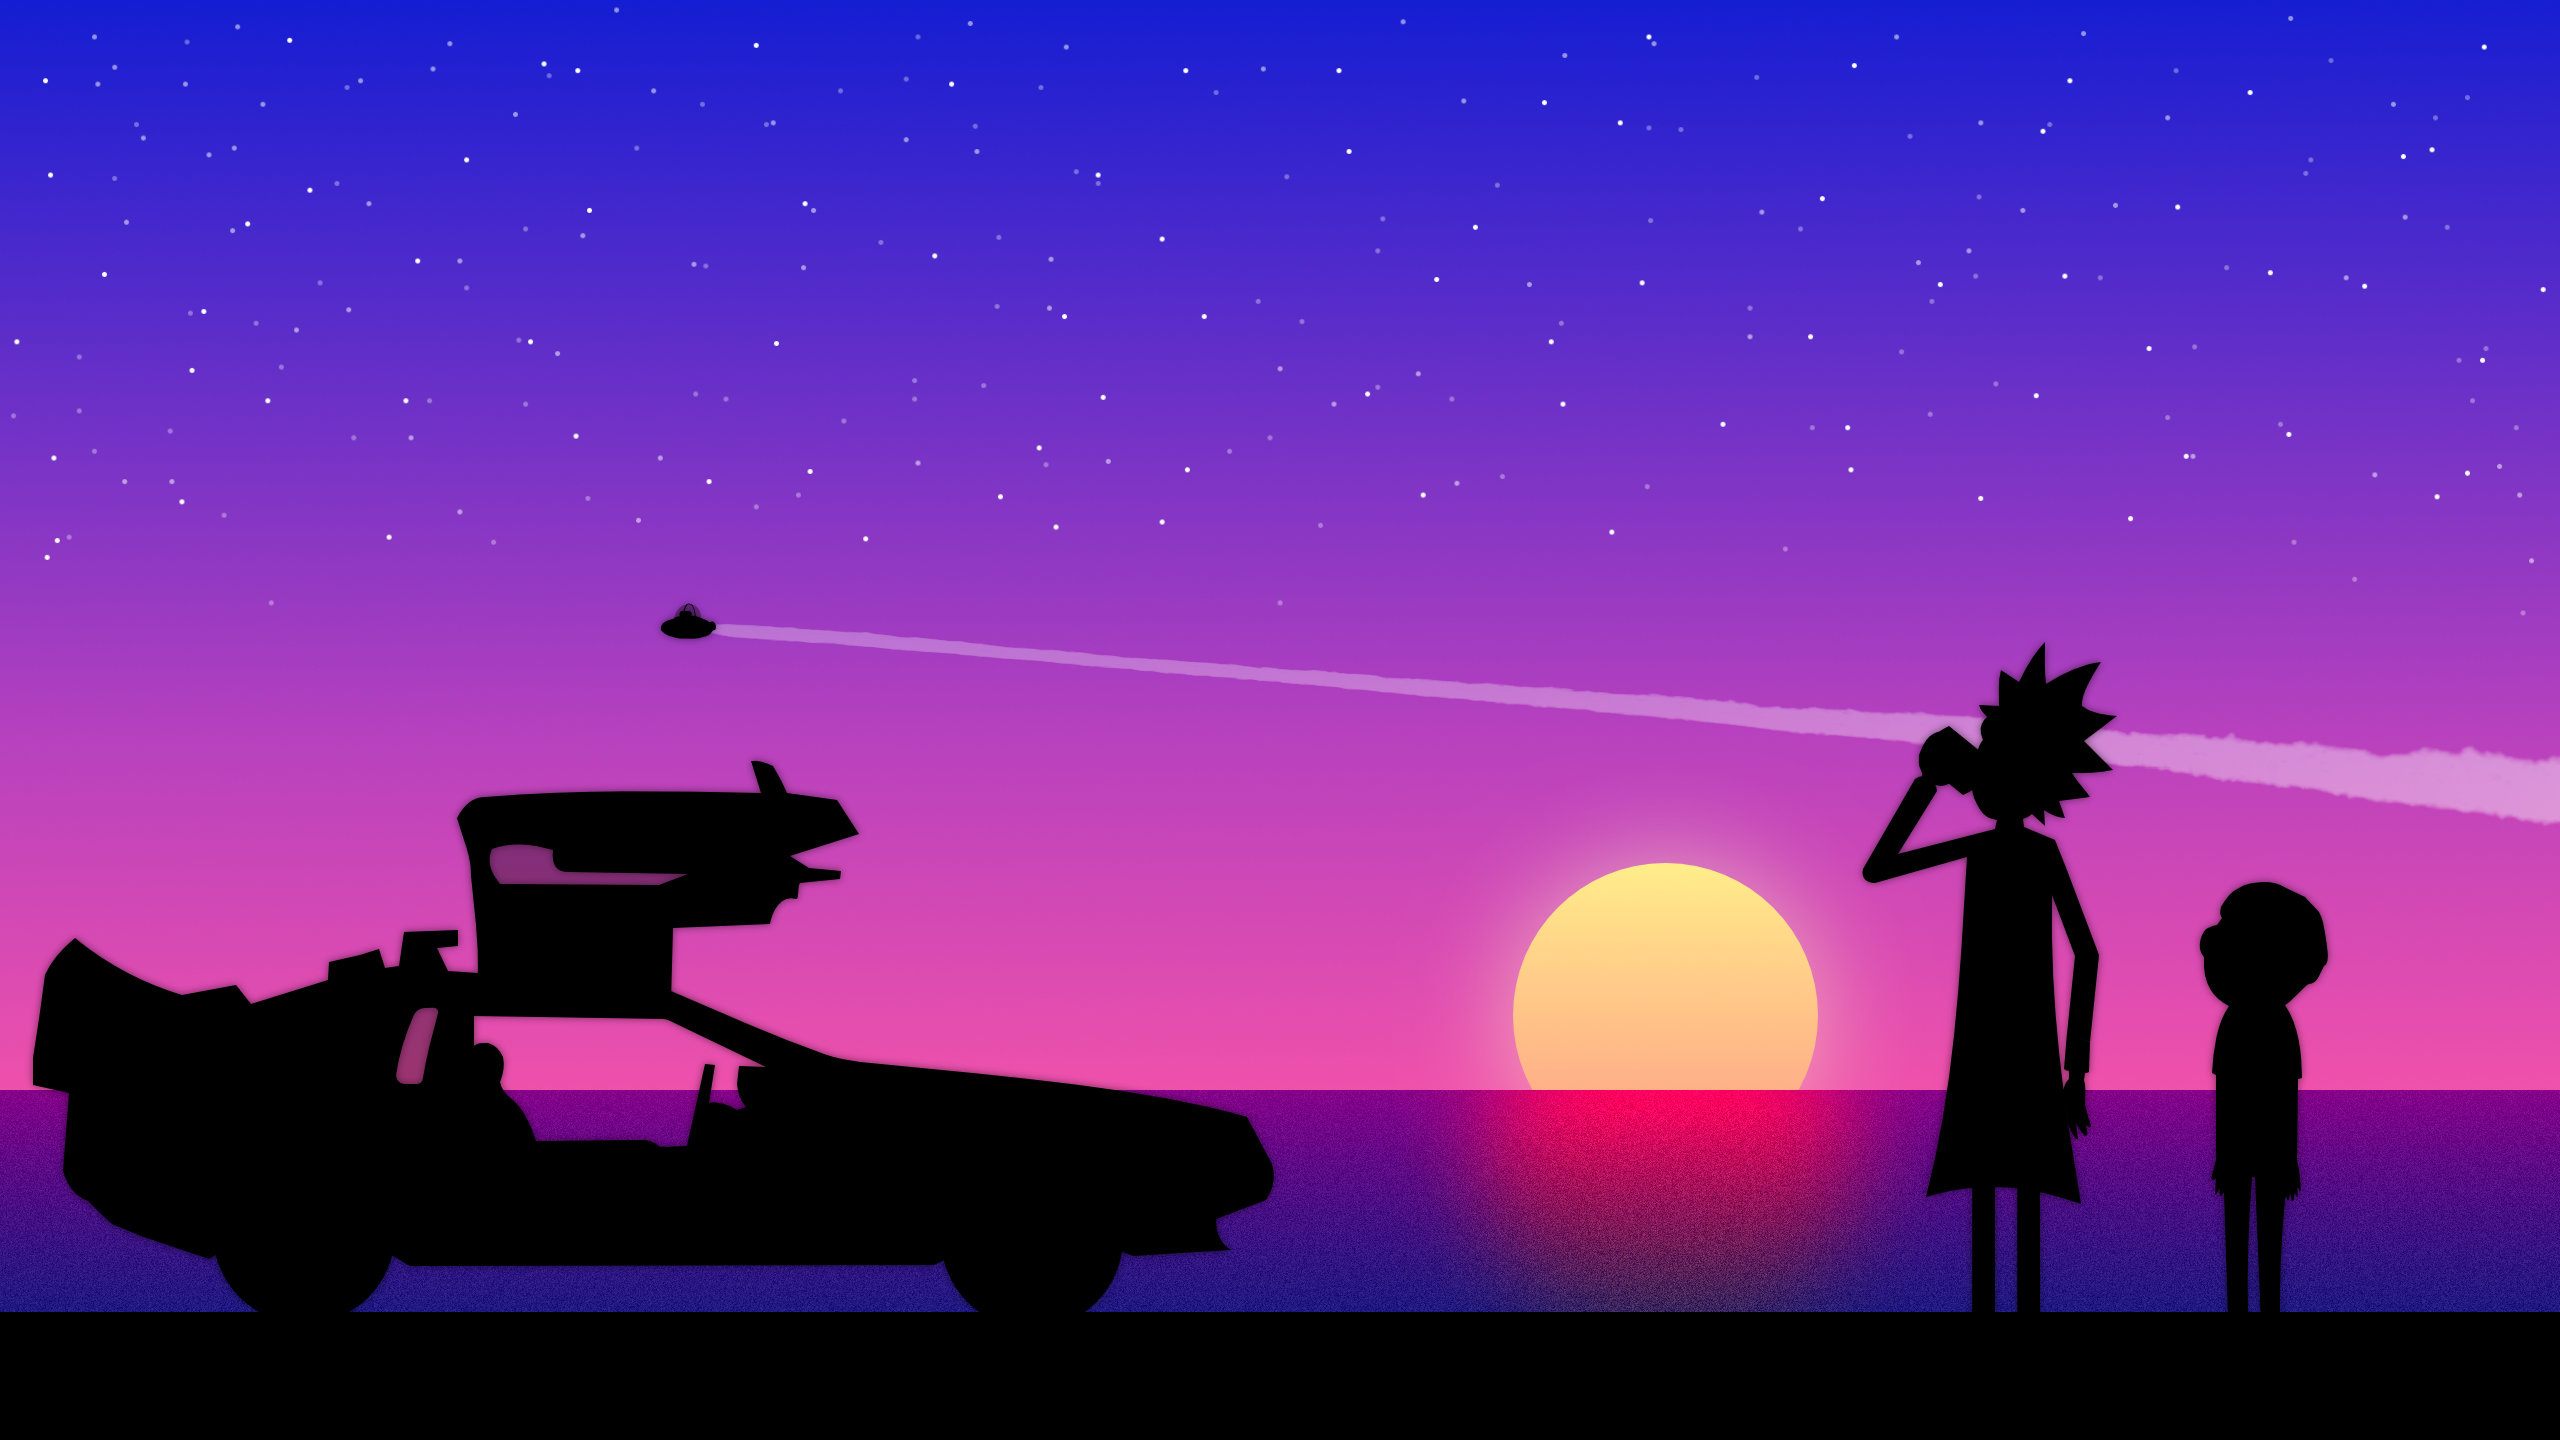 tv show rick and morty rick sanchez morty smith purple vector car sunset wallpaper